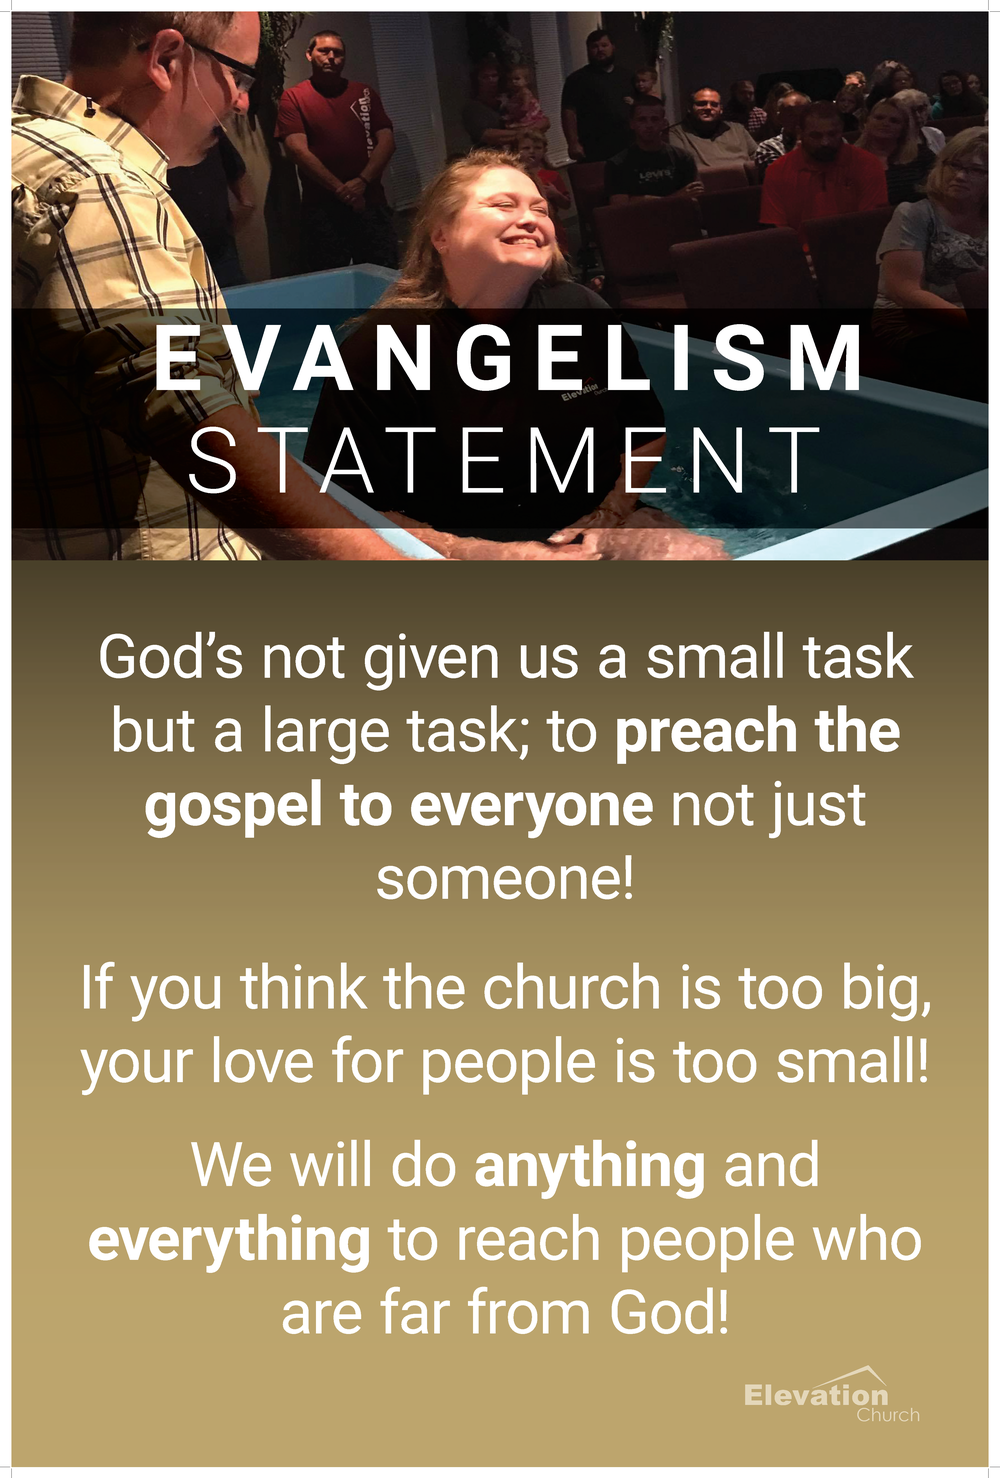 Elevation Church Ministries Statements for Foyer Wall 3